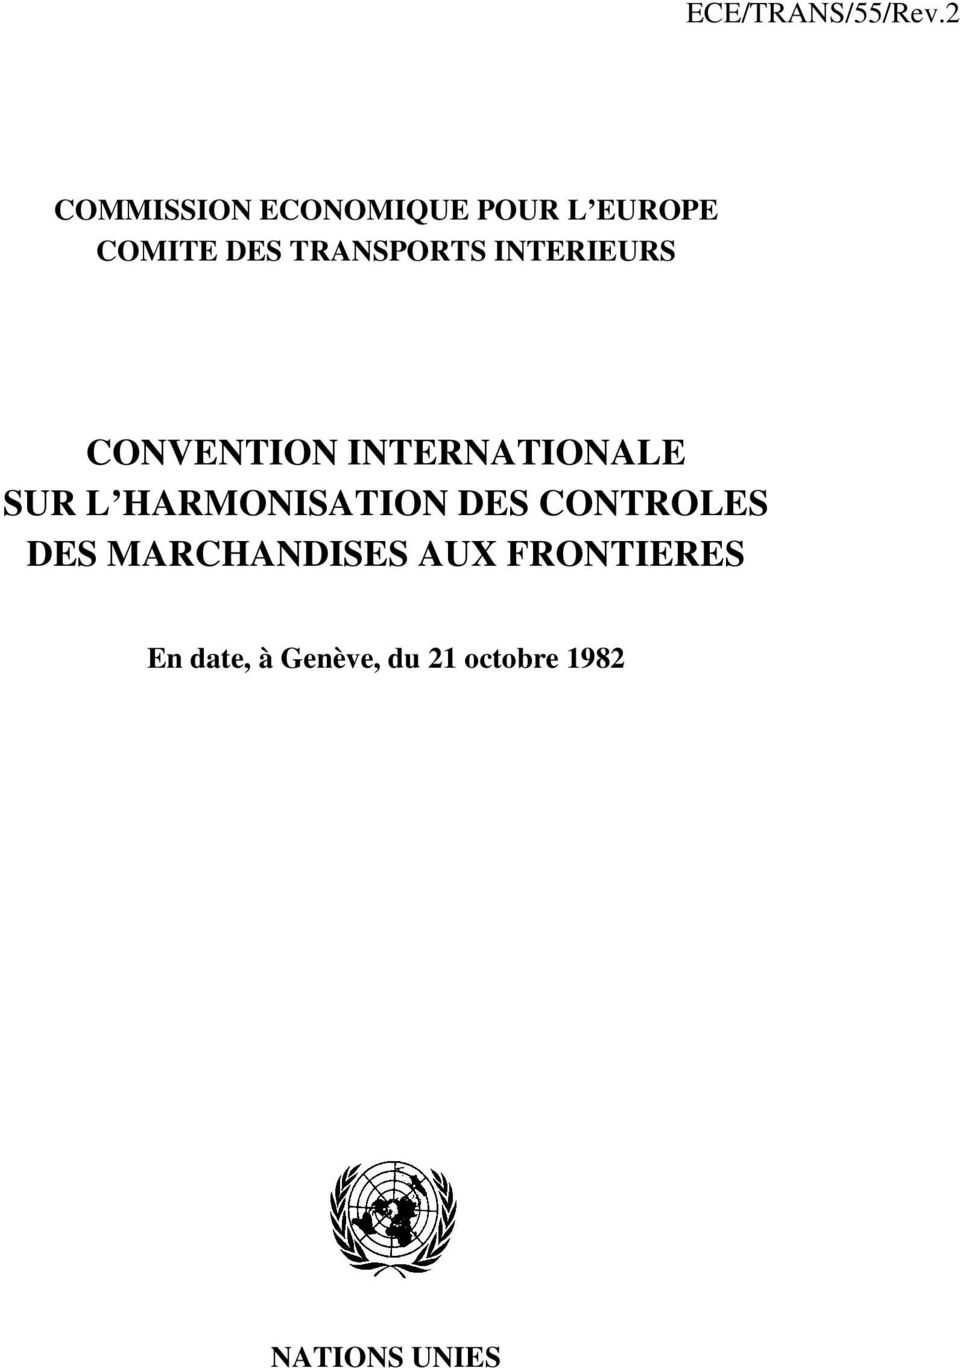 TRANSPORTS INTERIEURS CONVENTION INTERNATIONALE SUR L